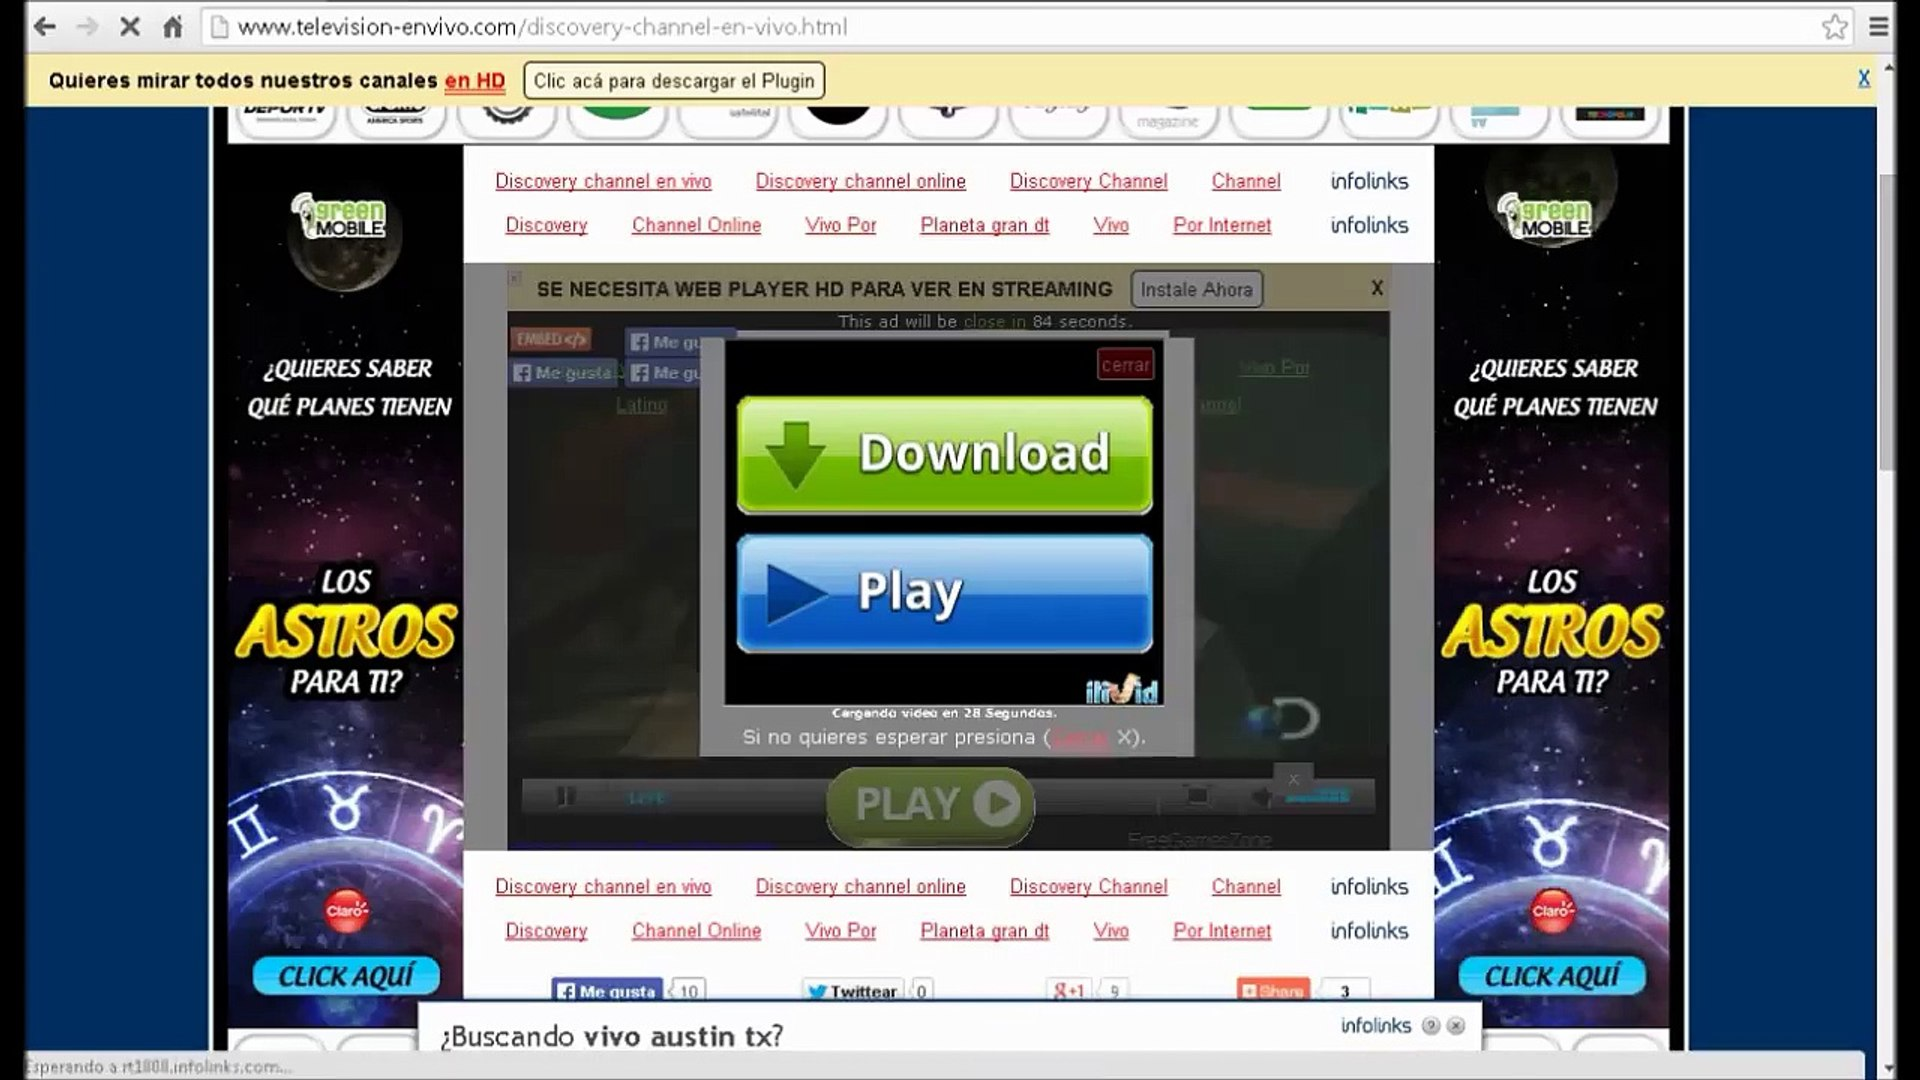 Discovery Channel Online _ Discovery Channel En Vivo _ Discovery Channel Live-KqoQ9-XupHc